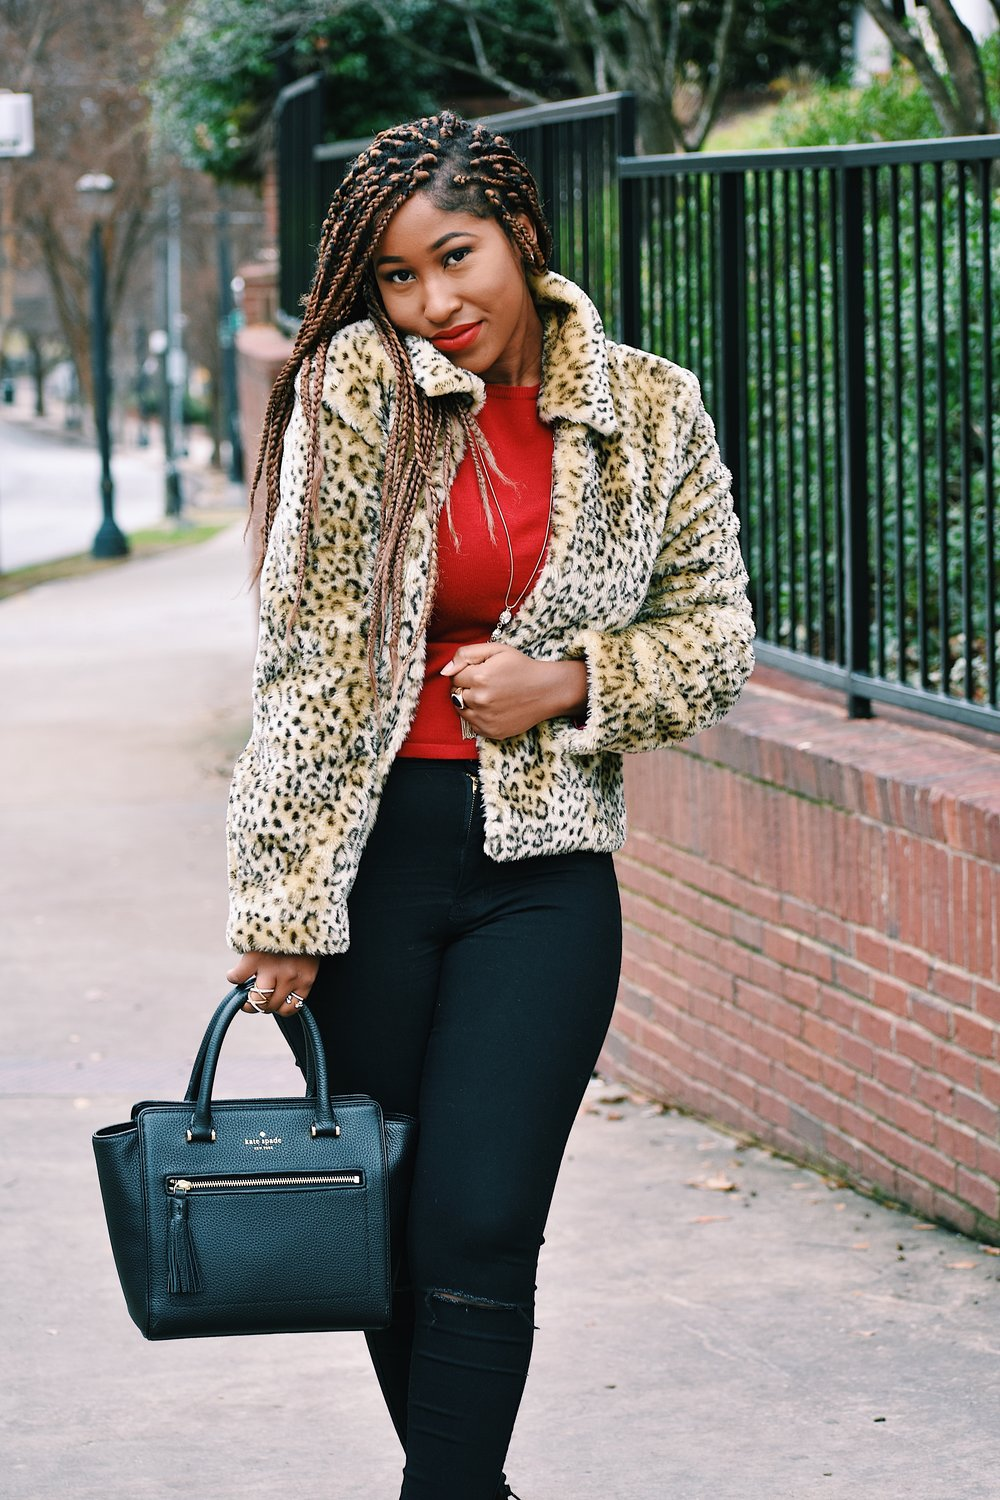 Thrifted Look - You never have to break the bank to look fabulous. Pull out your coins and head to a thrift store!